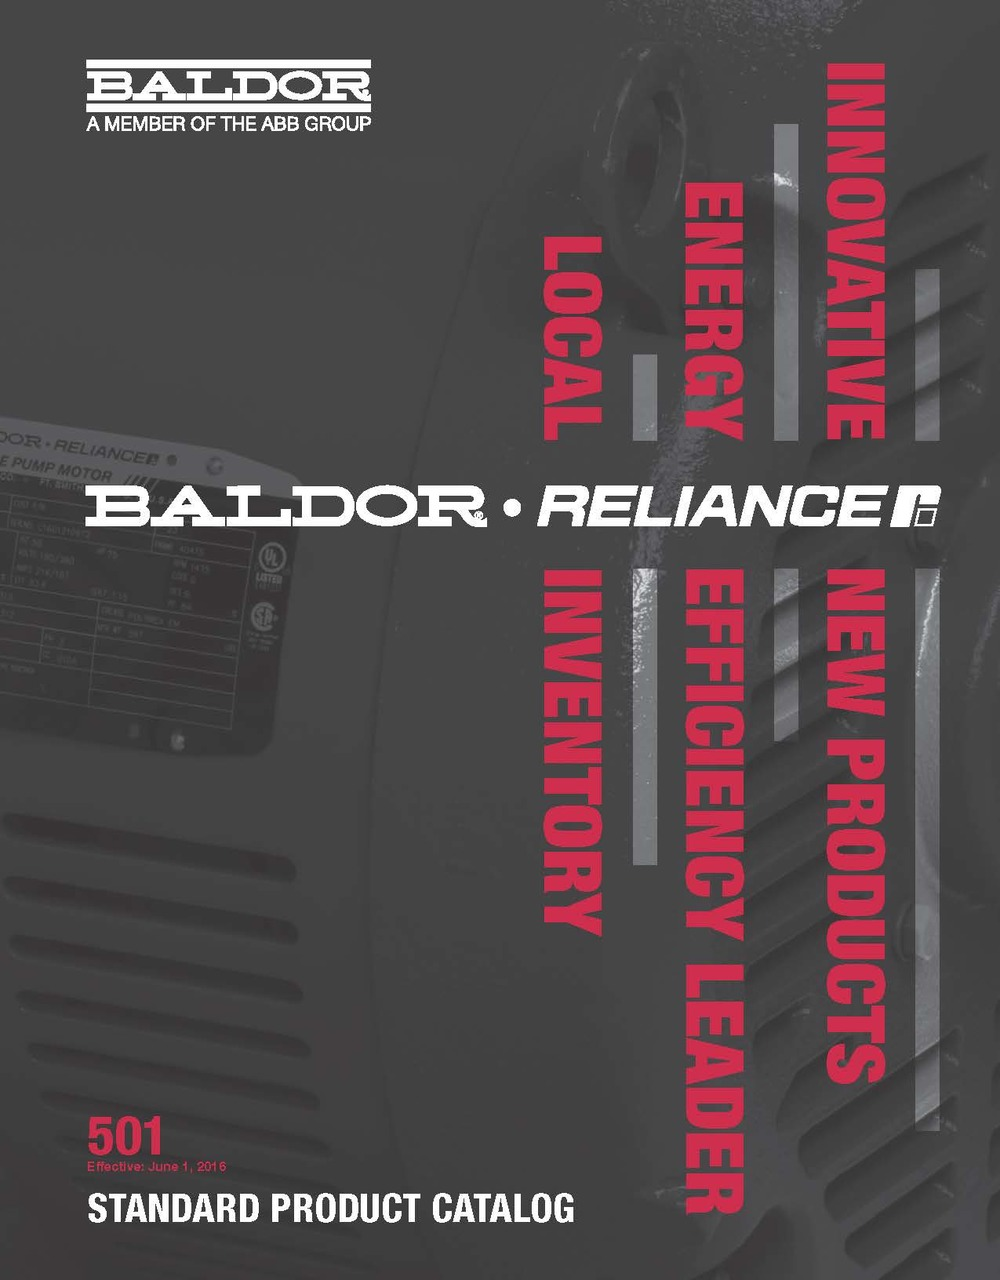 Baldor Motors & Drives